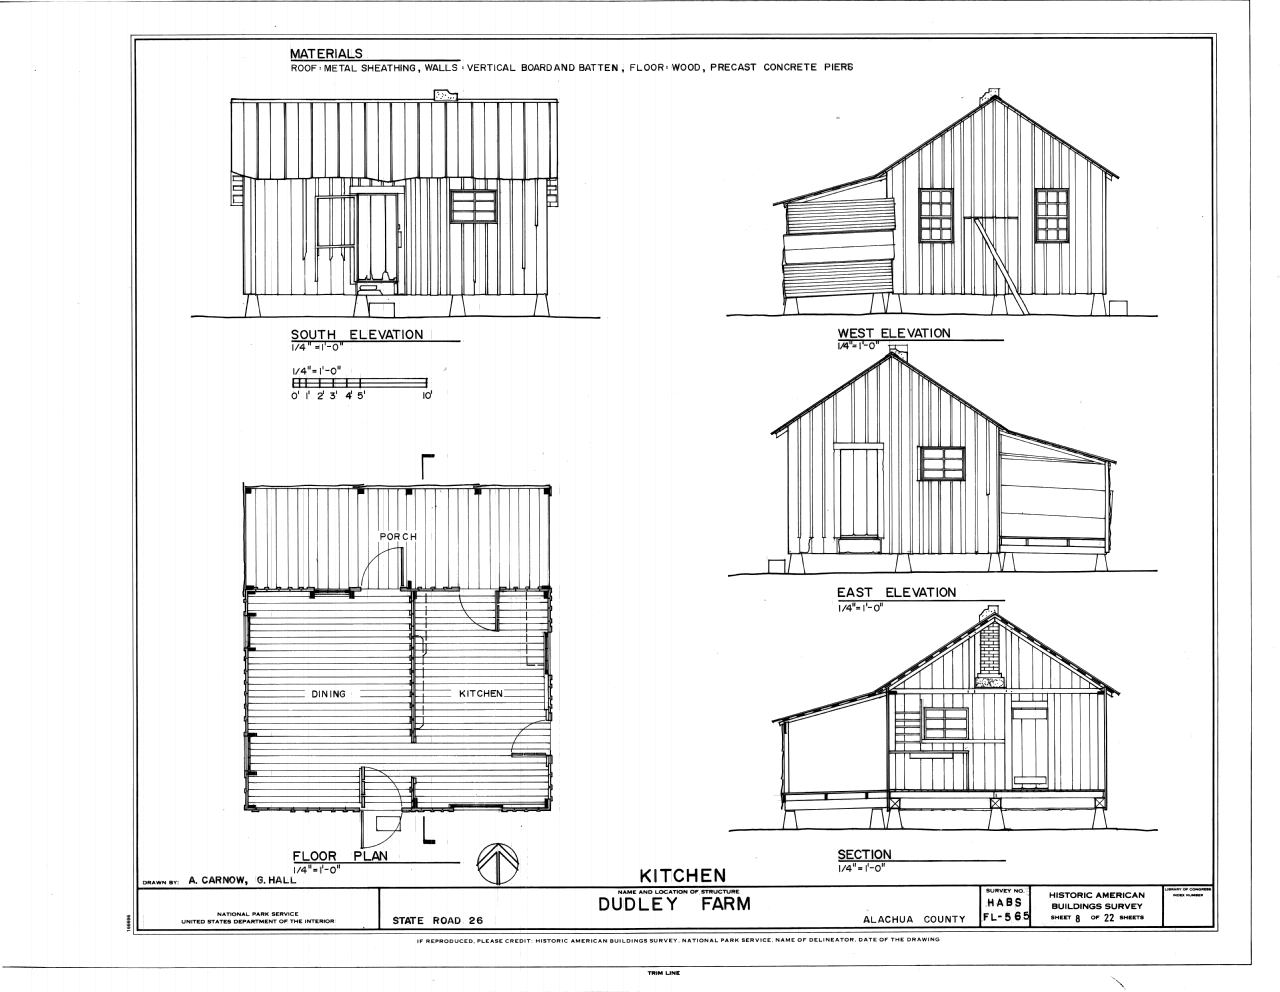 file kitchen - elevations  floor plan and section